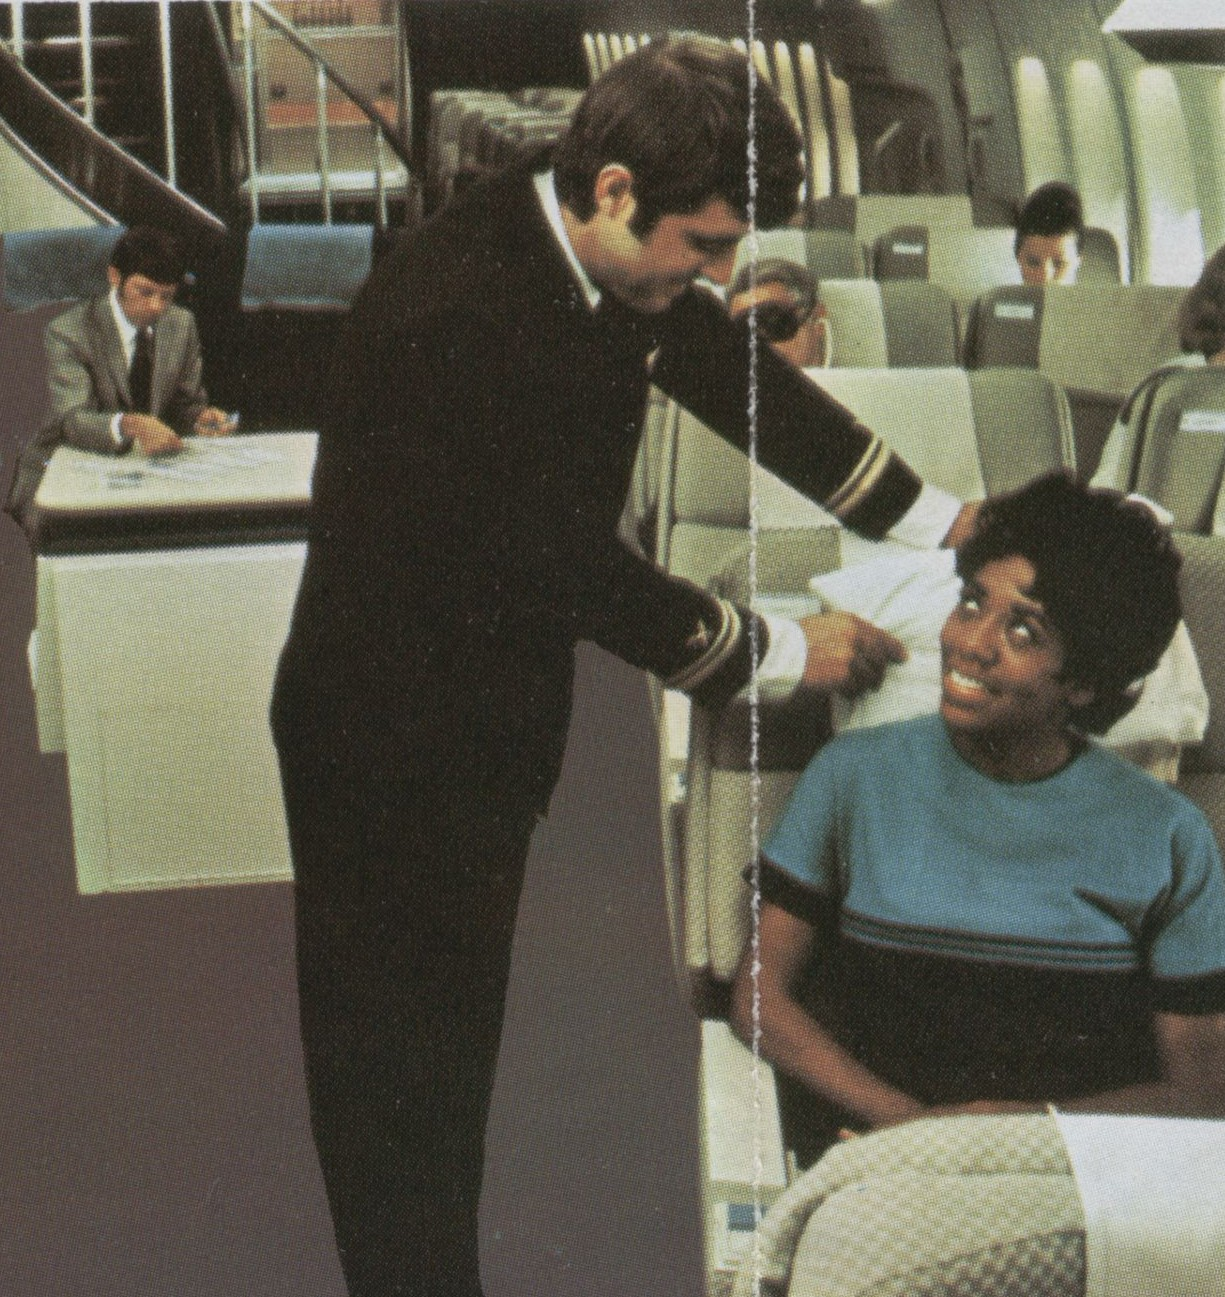 1970s  A Pan Am steward assists a customer in the First Class cabin of a Boeing 747.